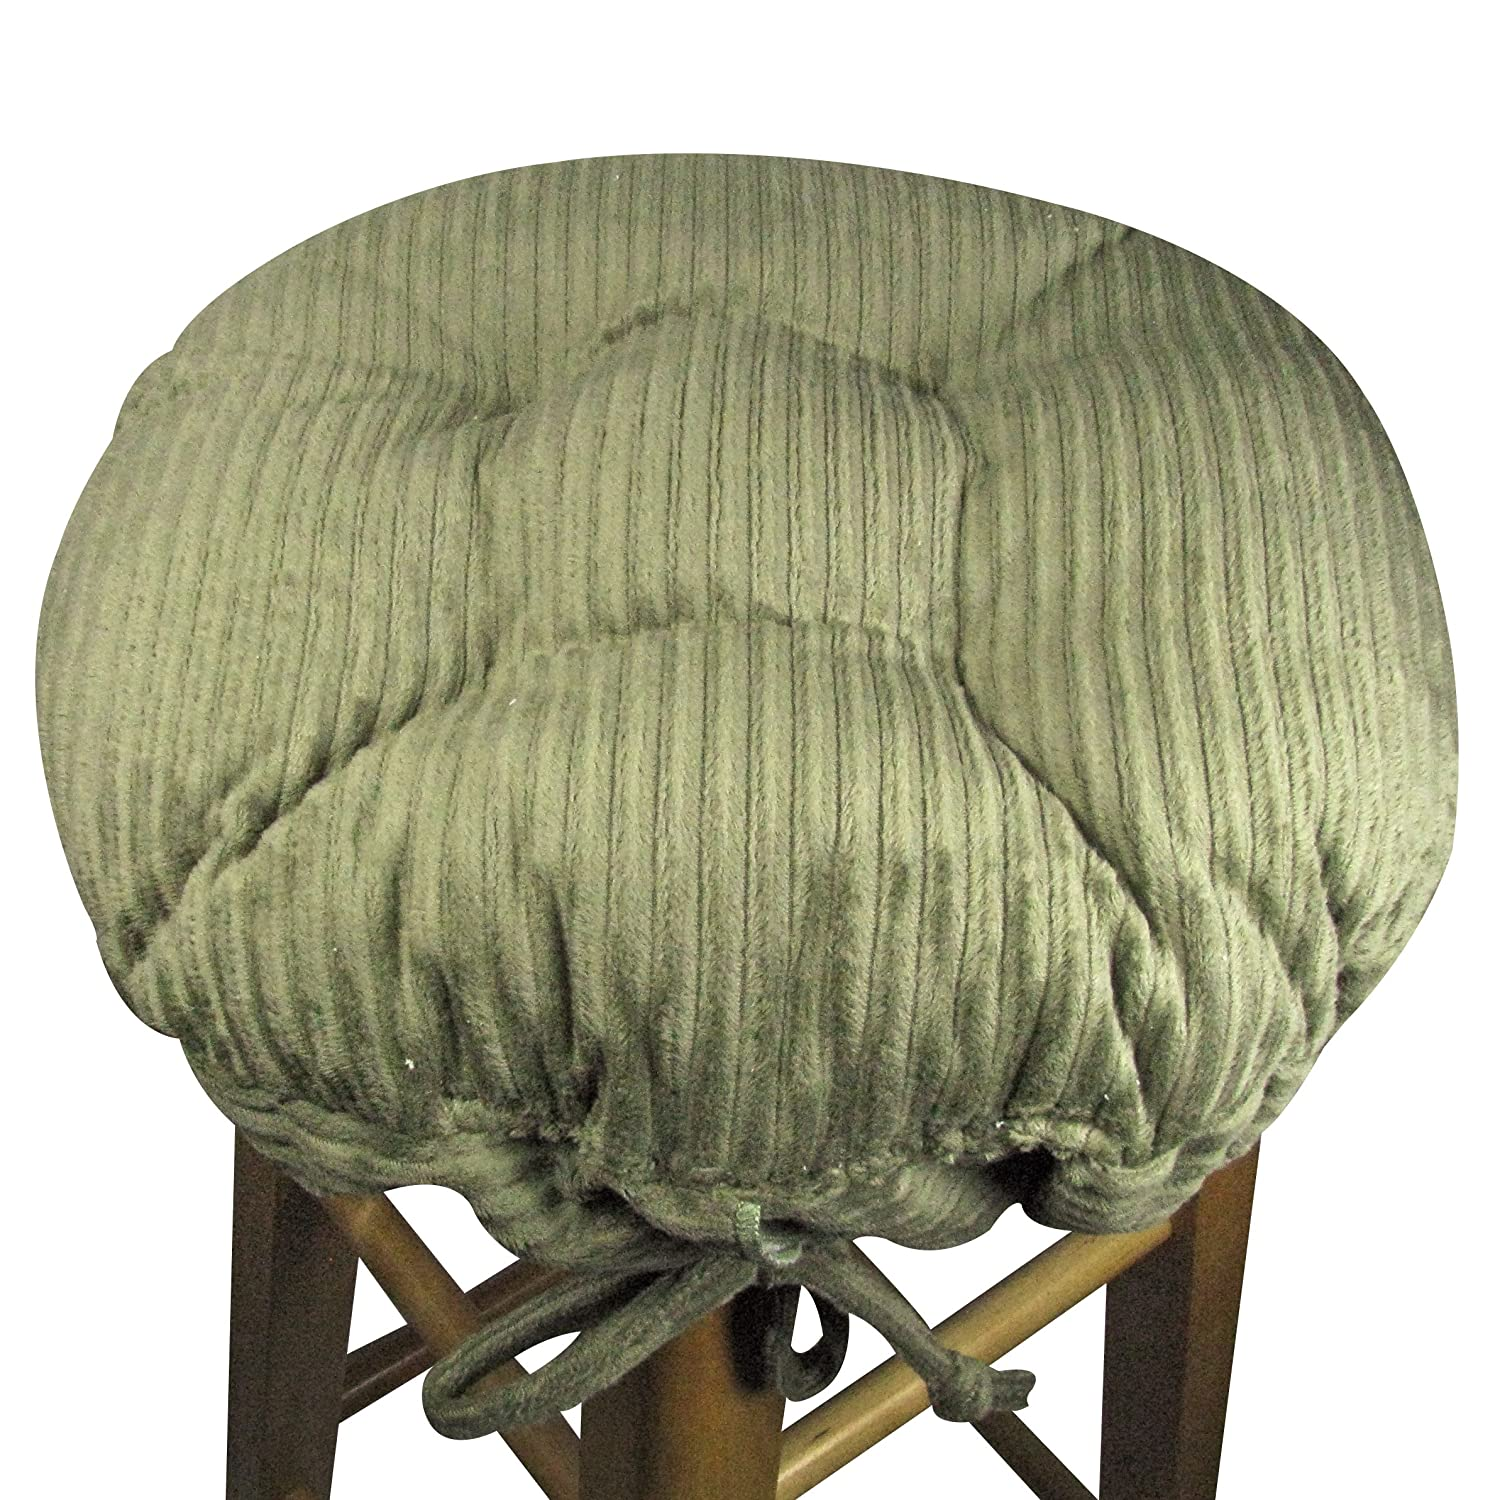 Amazon.com 13  Round Bar Stool Cover with Adjustable Drawstring Yoke - Wide Wale Olive Green Corduroy - Latex Foam Fill Barstool Cushion - Made in USA ...  sc 1 st  Amazon.com & Amazon.com: 13